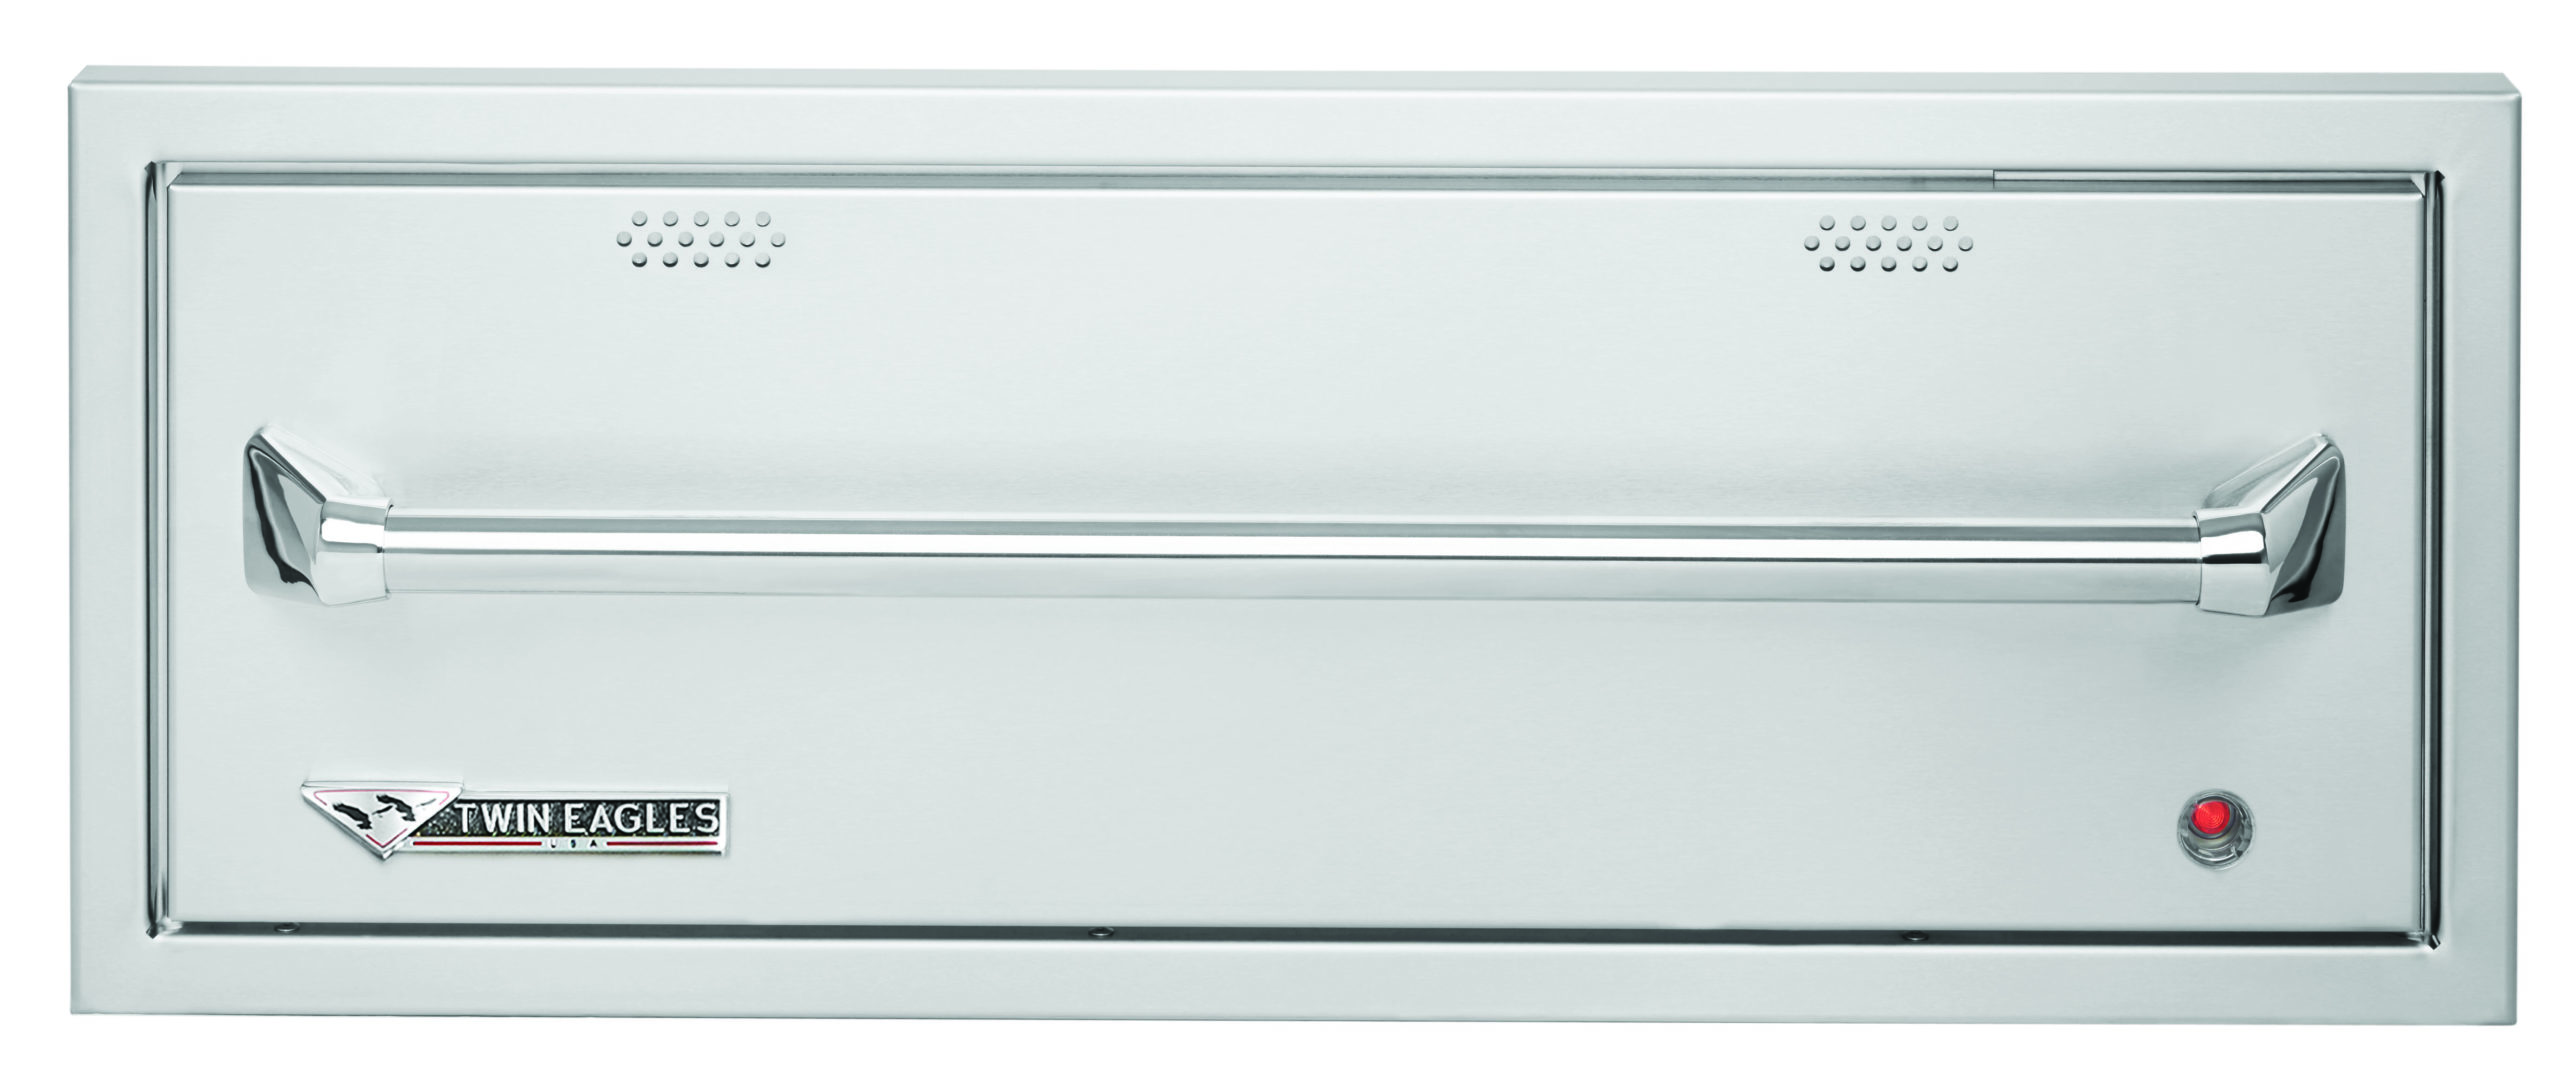 "Twin Eagles 30"" Warming Drawer TEWD30"